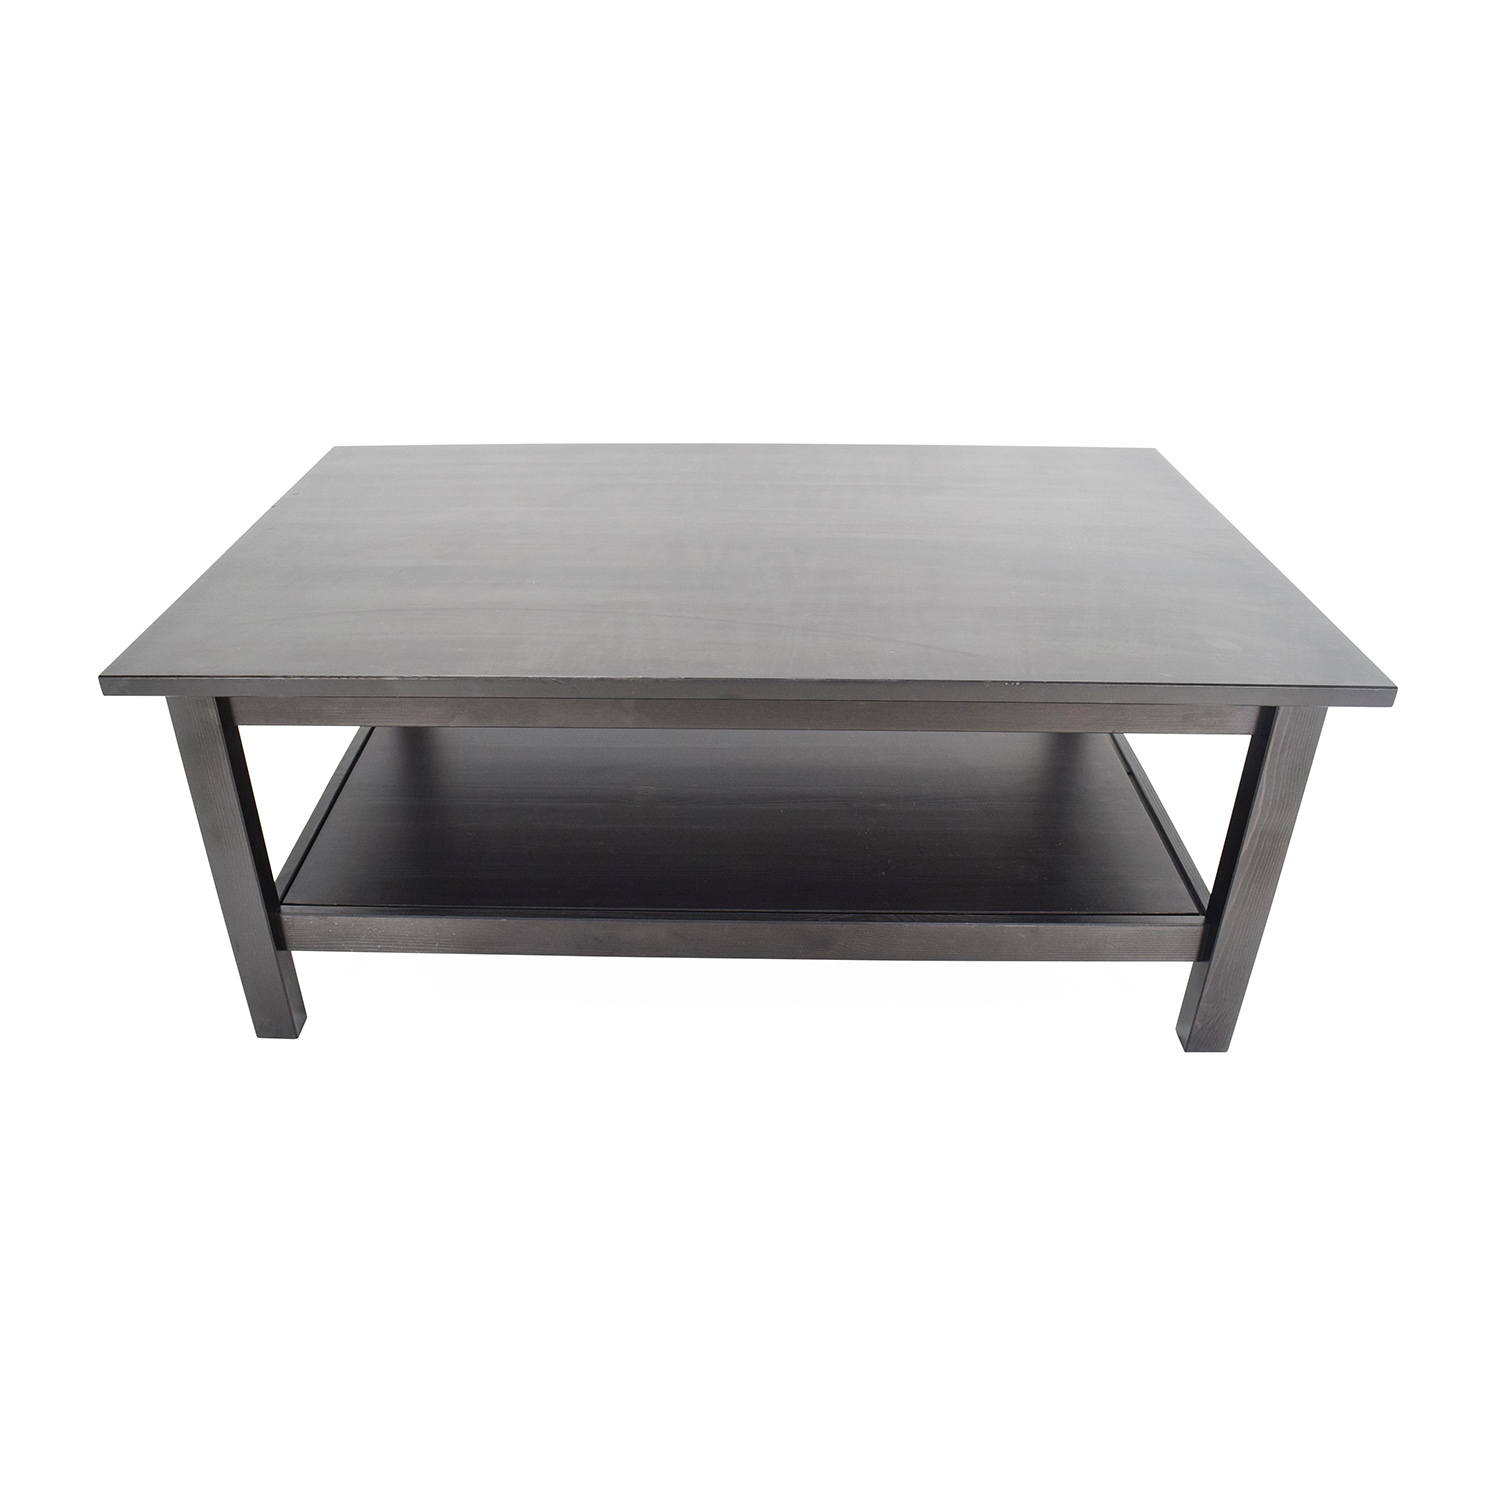 69% OFF Glass Coffee Table Tables